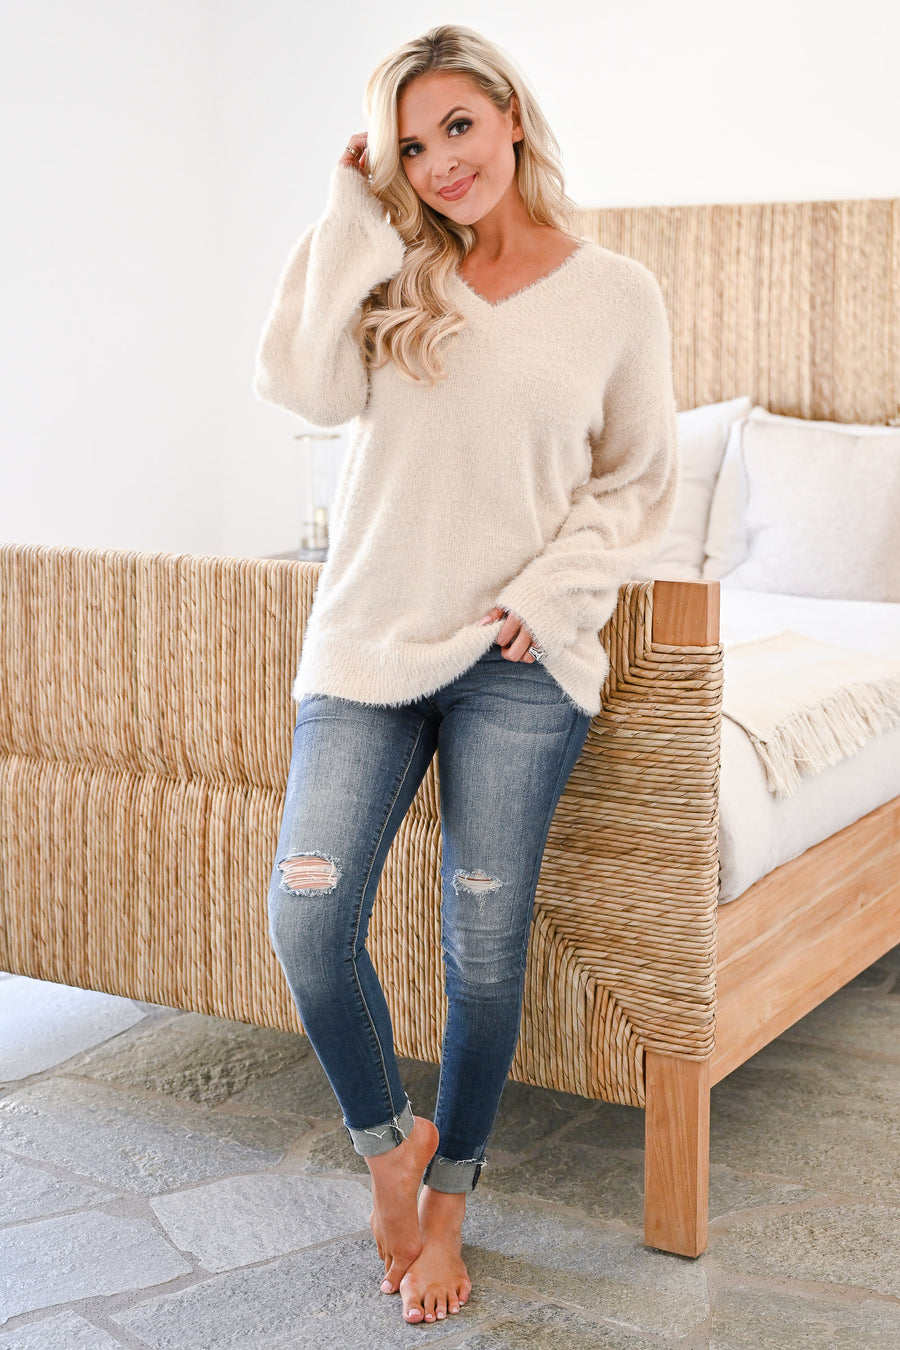 By The Fire Fuzzy Sweater - Cream womens casual long sleeve v-neck fuzzy cozy sweater closet candy sitting